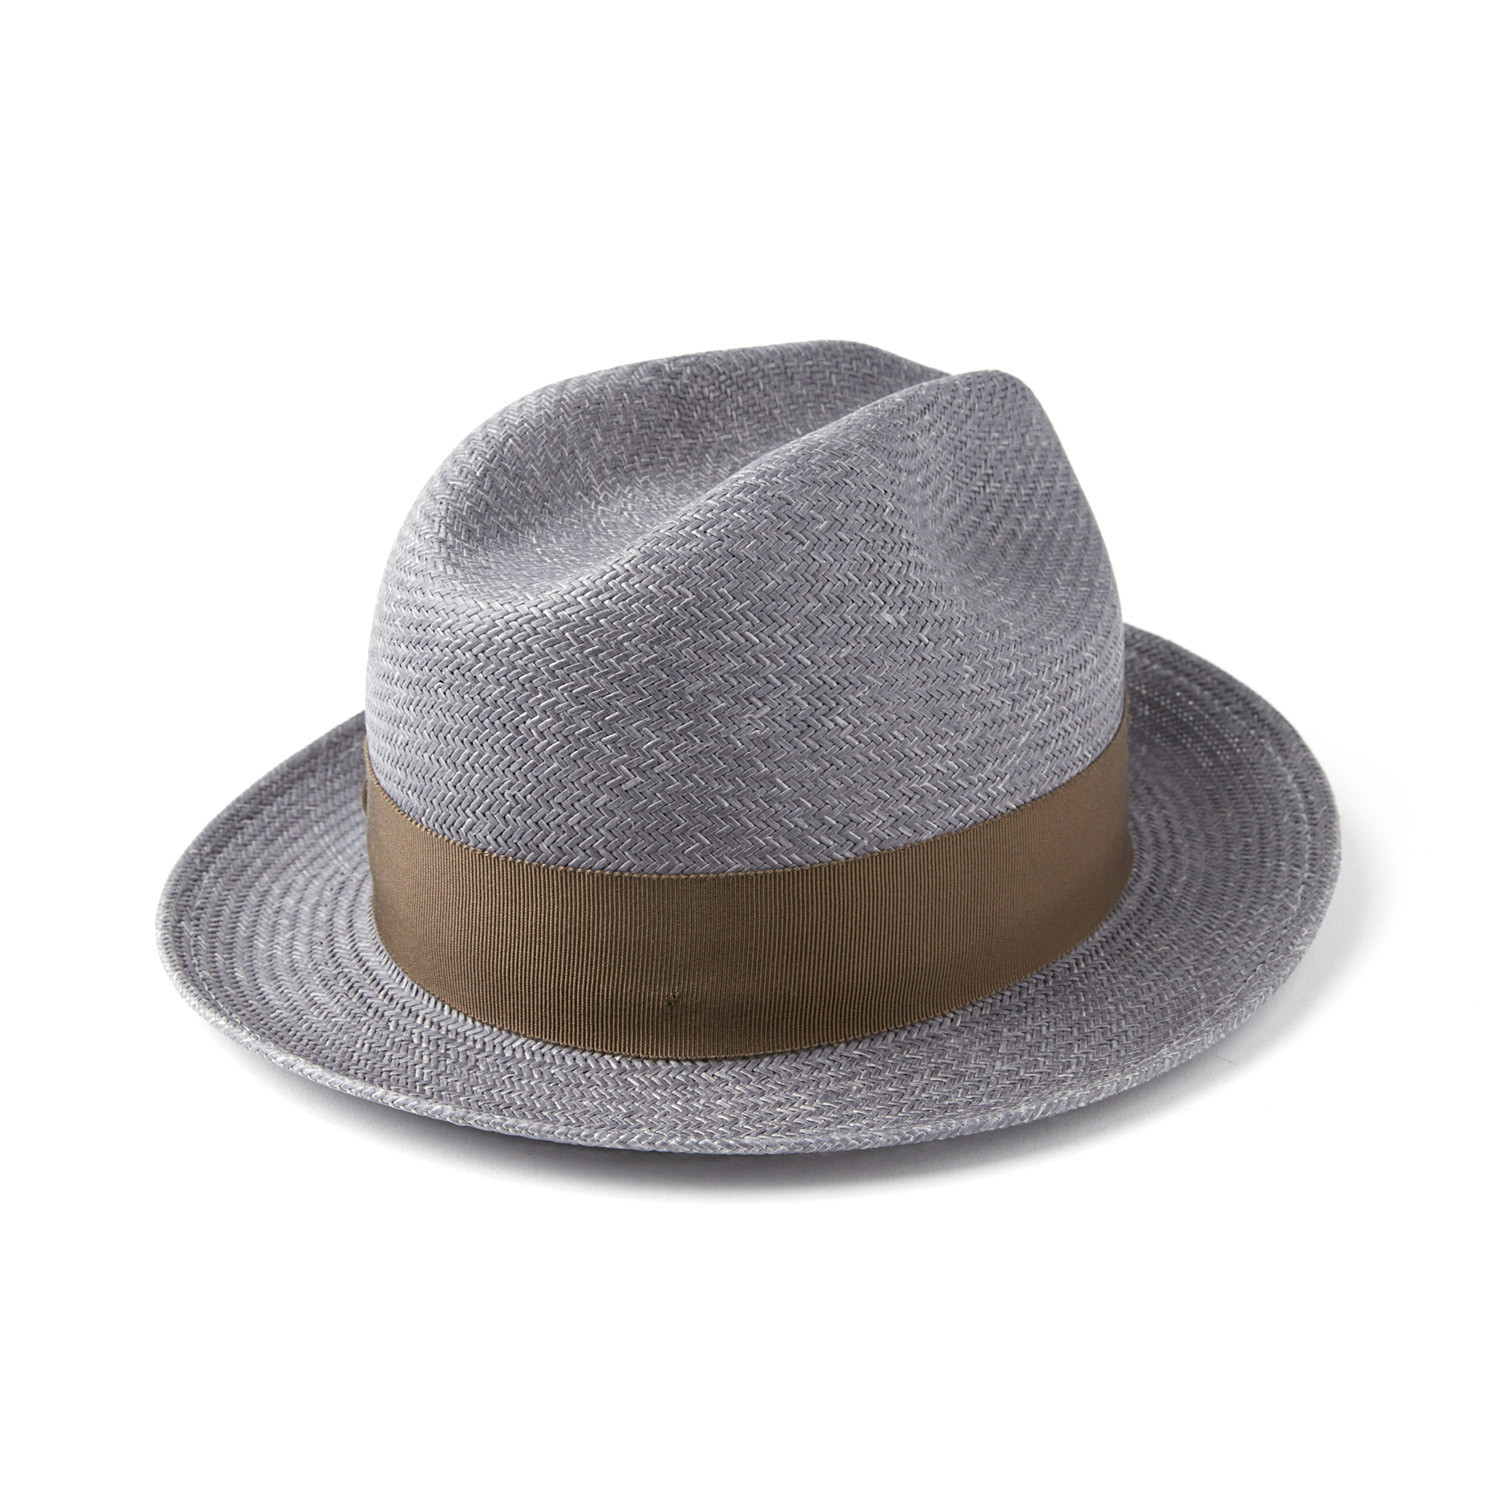 9797f48b0b560 Crother Fedora Steel - Bailey Hats Touch Of Modern. Crother Fedora Steel -  Bailey Hats Touch Of Modern. Byther Unisex Modern Chic Classic Style Floppy  Wide ...